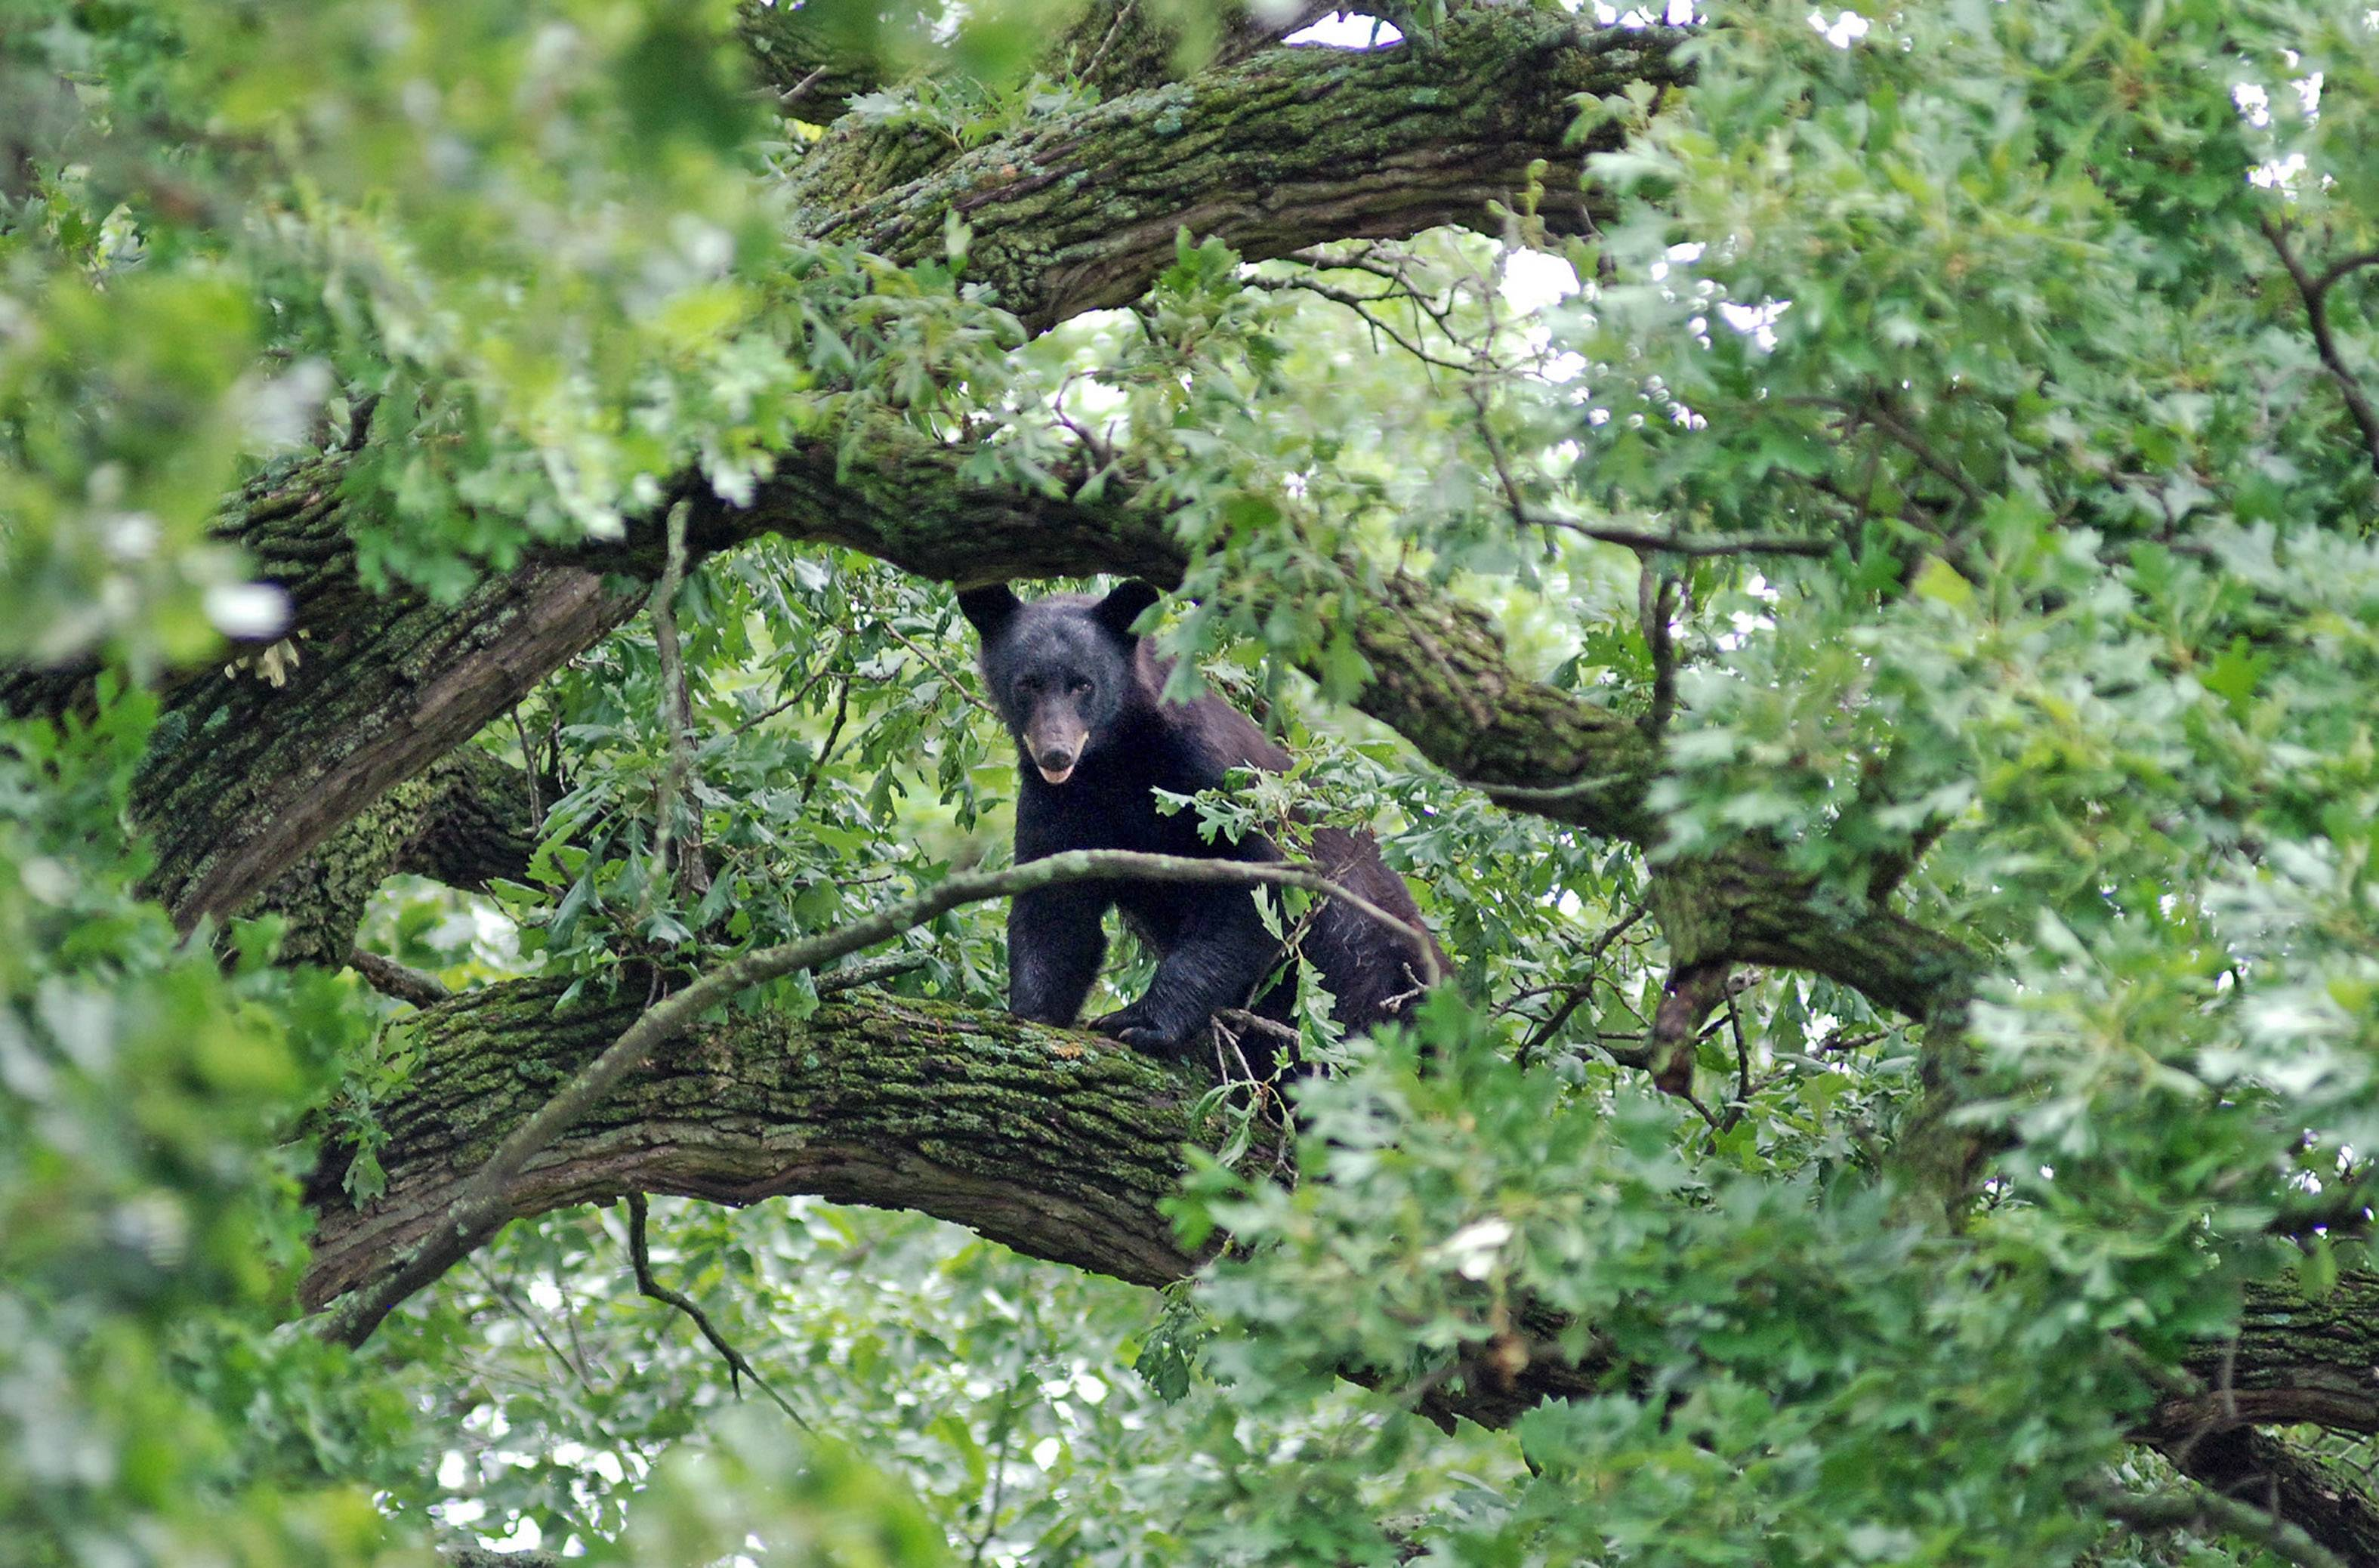 Wandering bear draws crowds